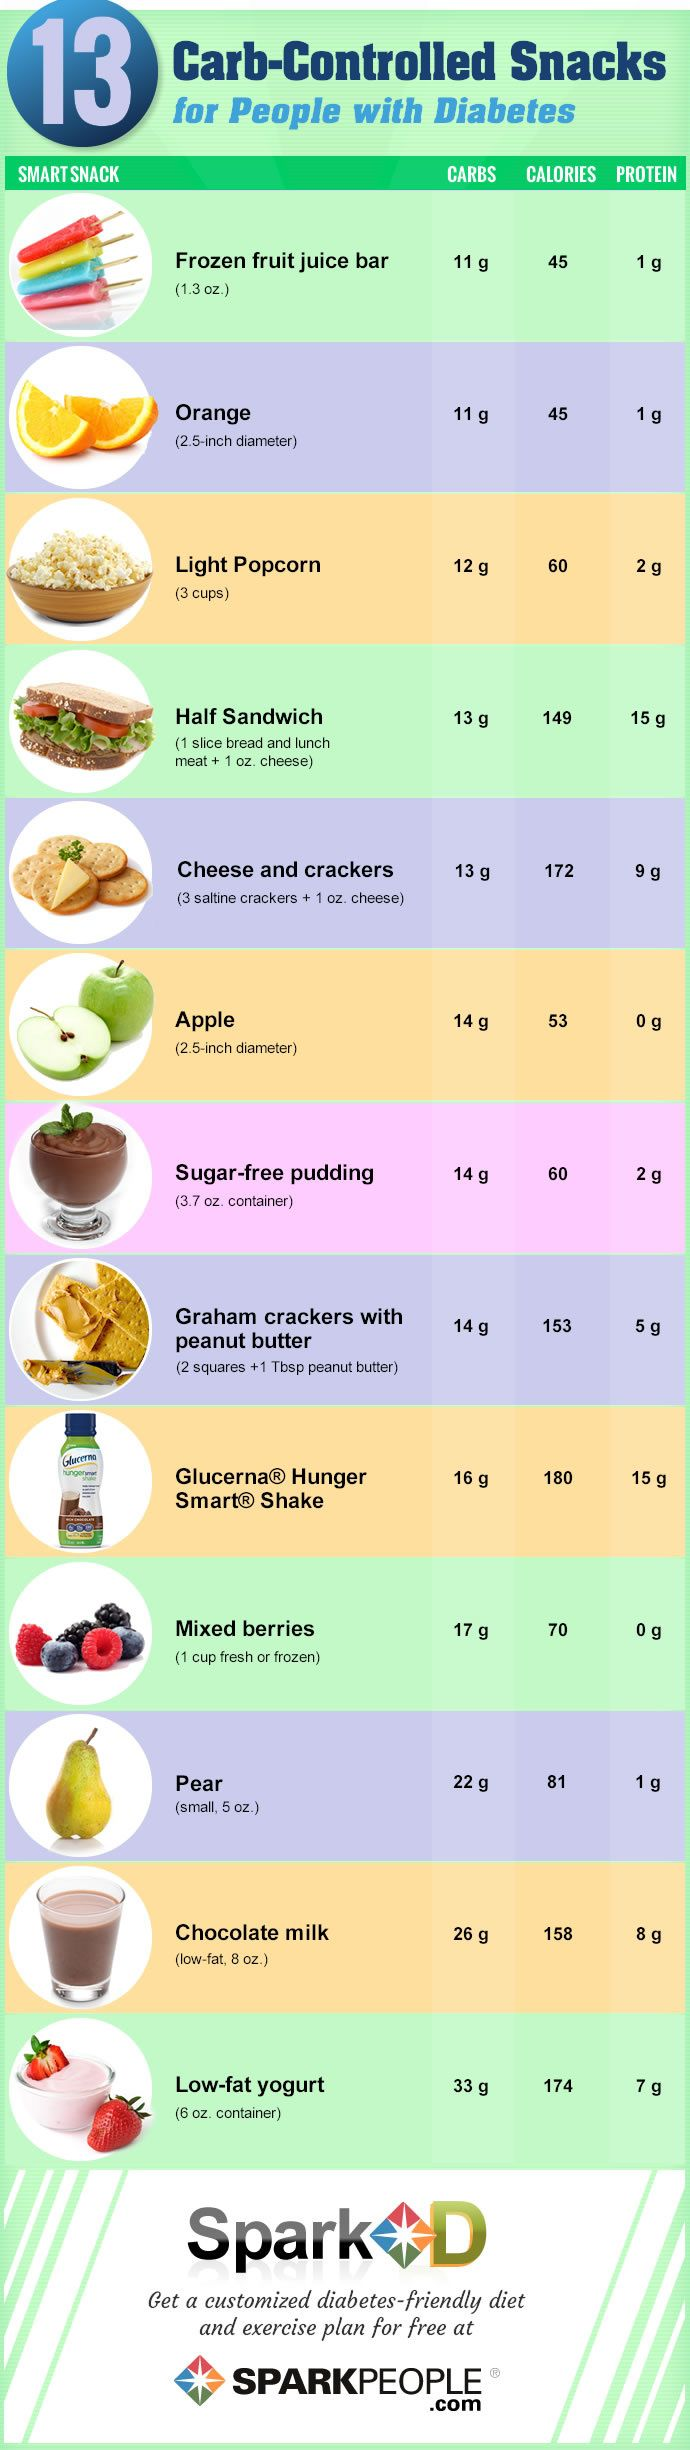 Not diabetic but also need to eat better to help prevent it...13 Carb-Controlled Snacks at Spark People